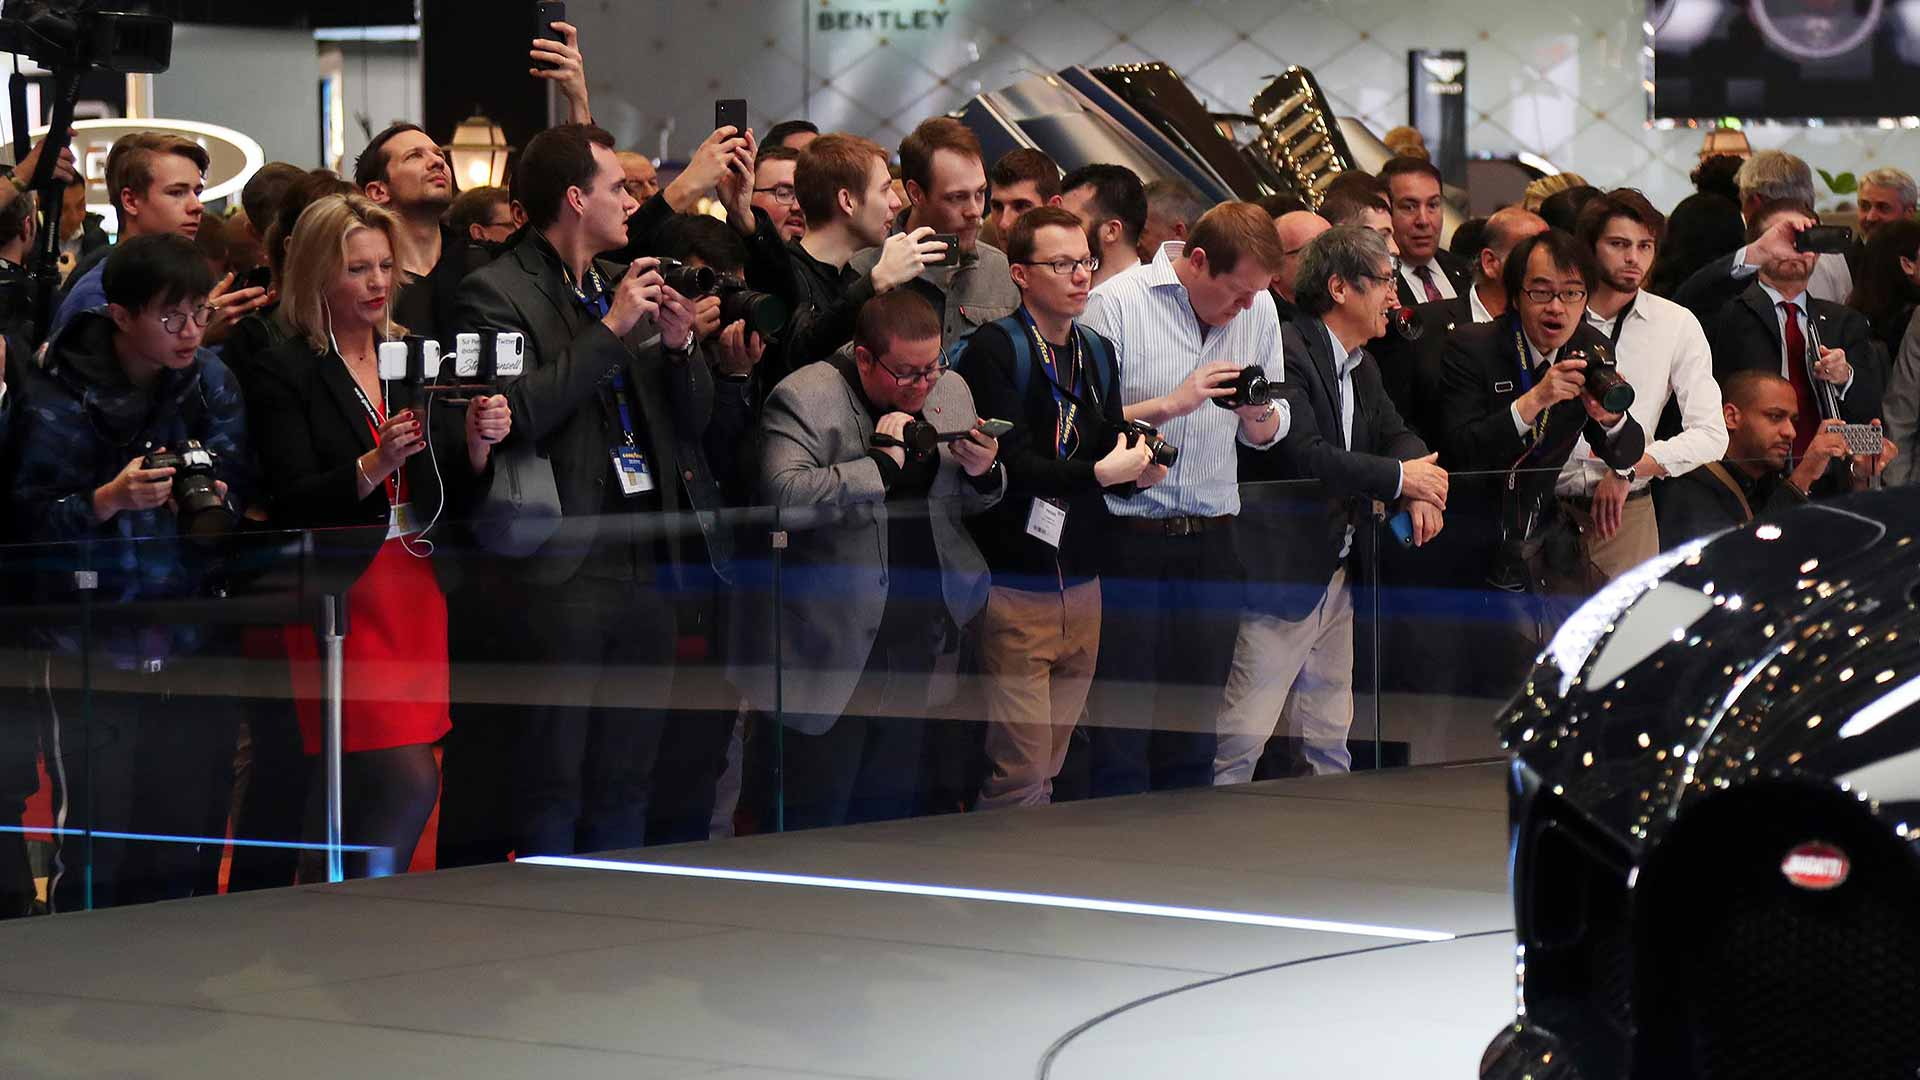 Crowds at the Geneva Motor Show